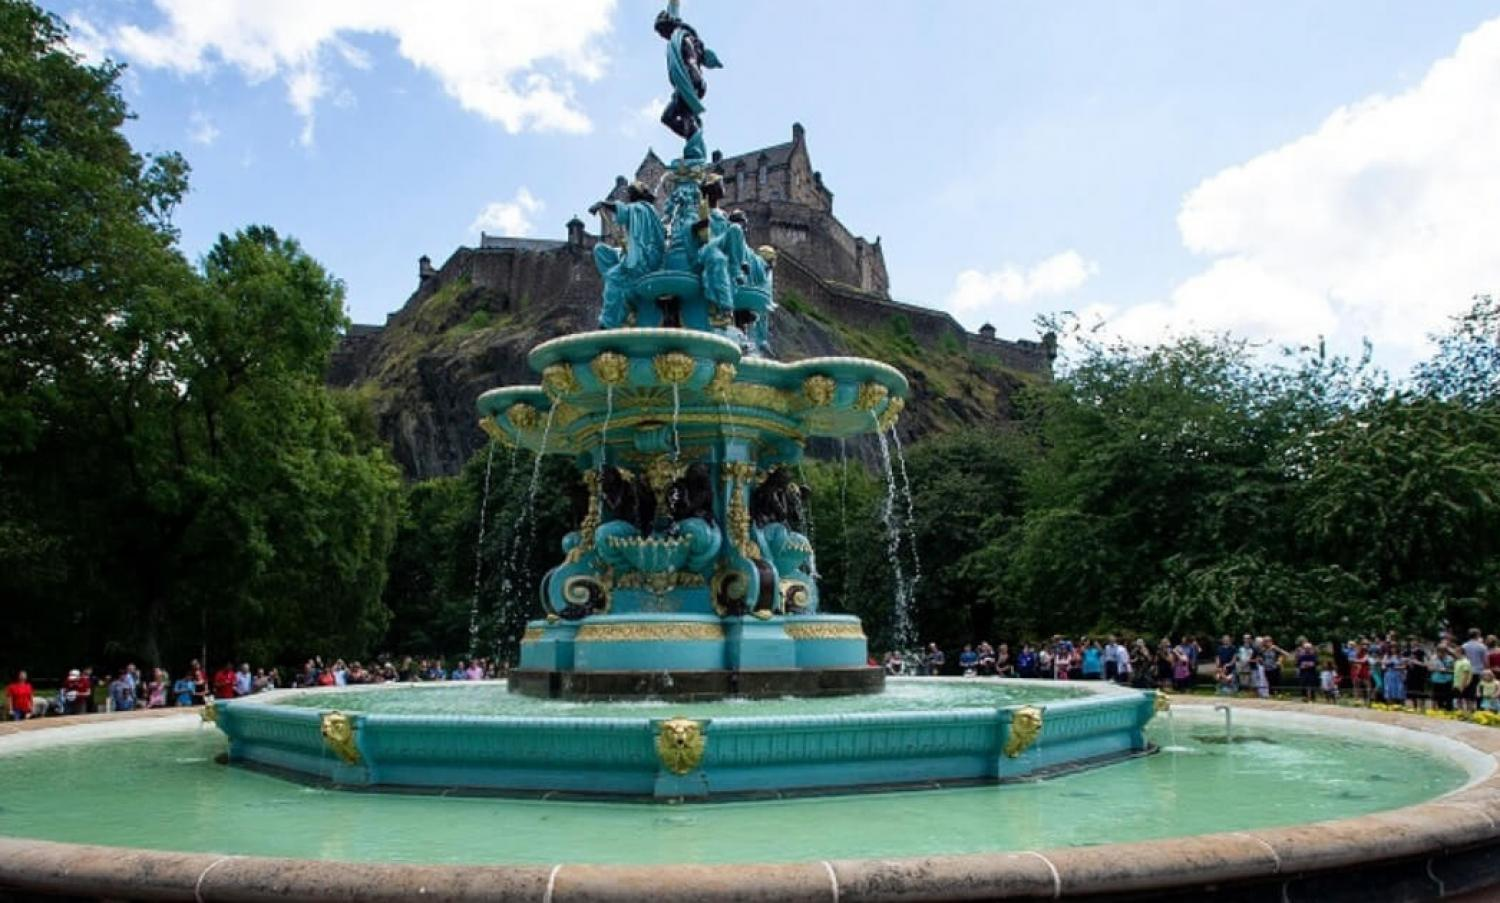 Ross Fountain in West Princes Street Gardens, Edinburgh.